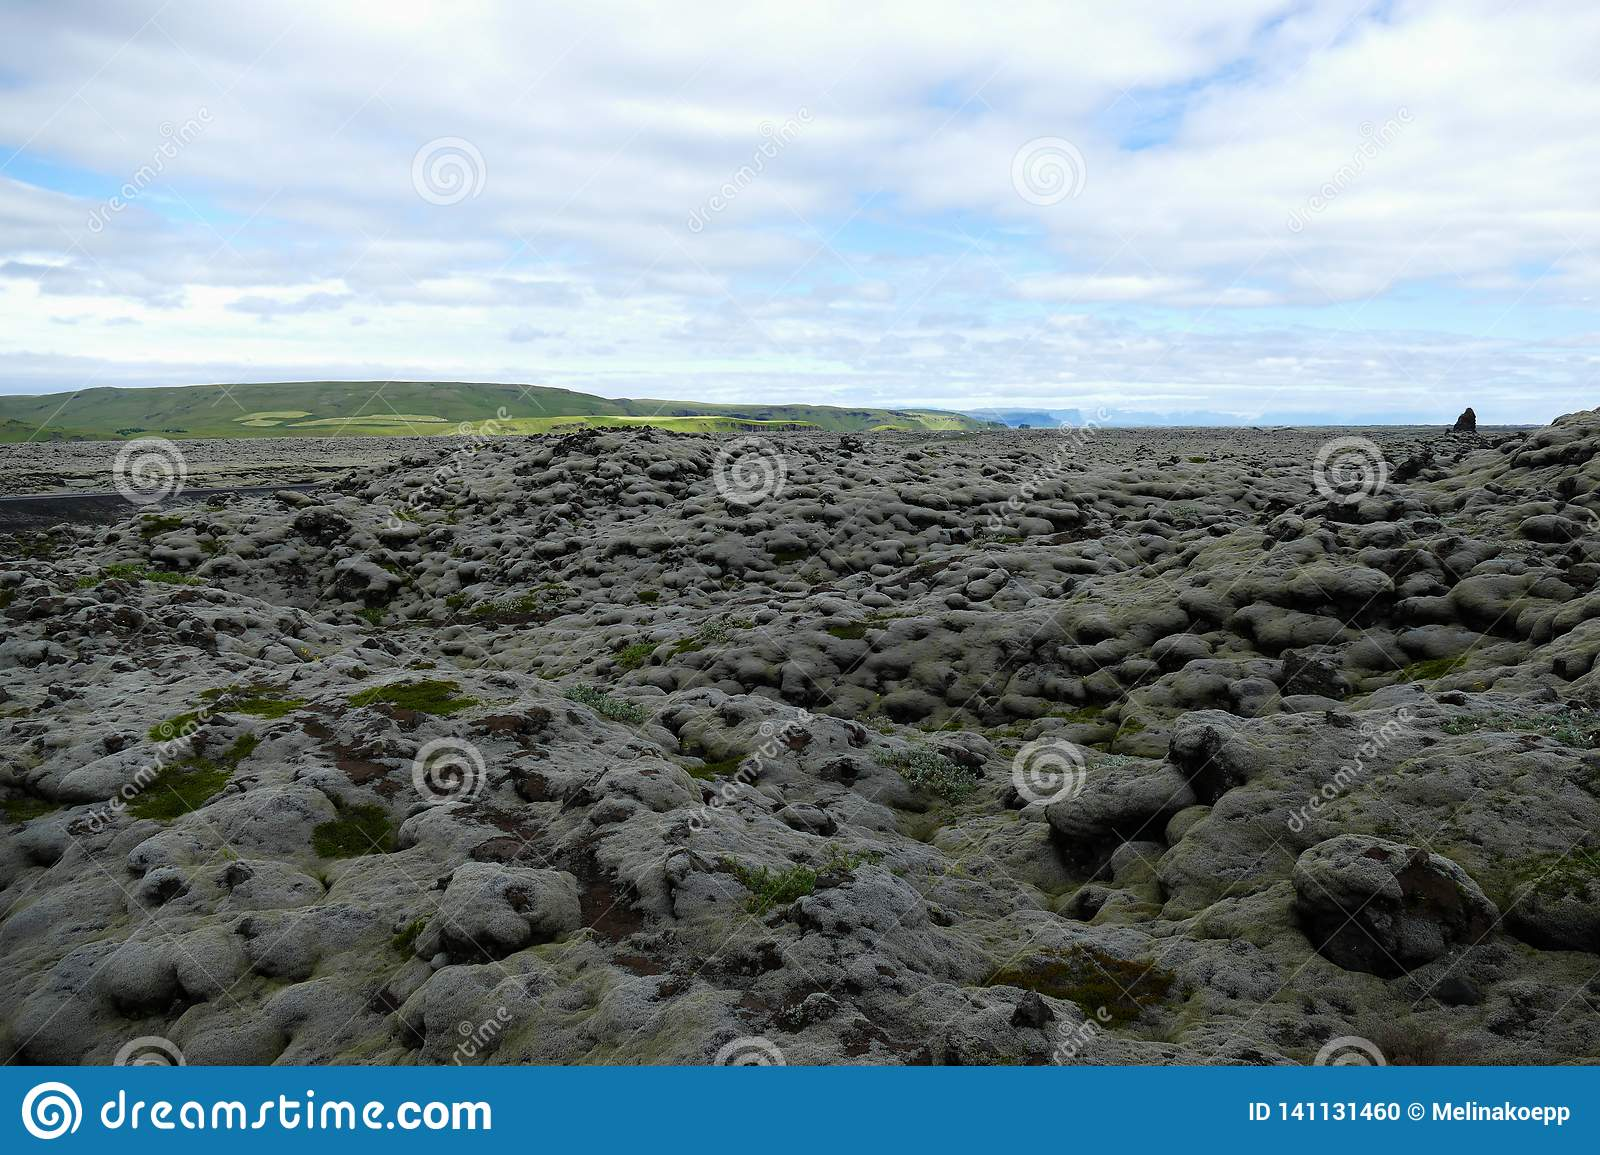 Moss landscape with stones covered in thick layers of moss, Iceland